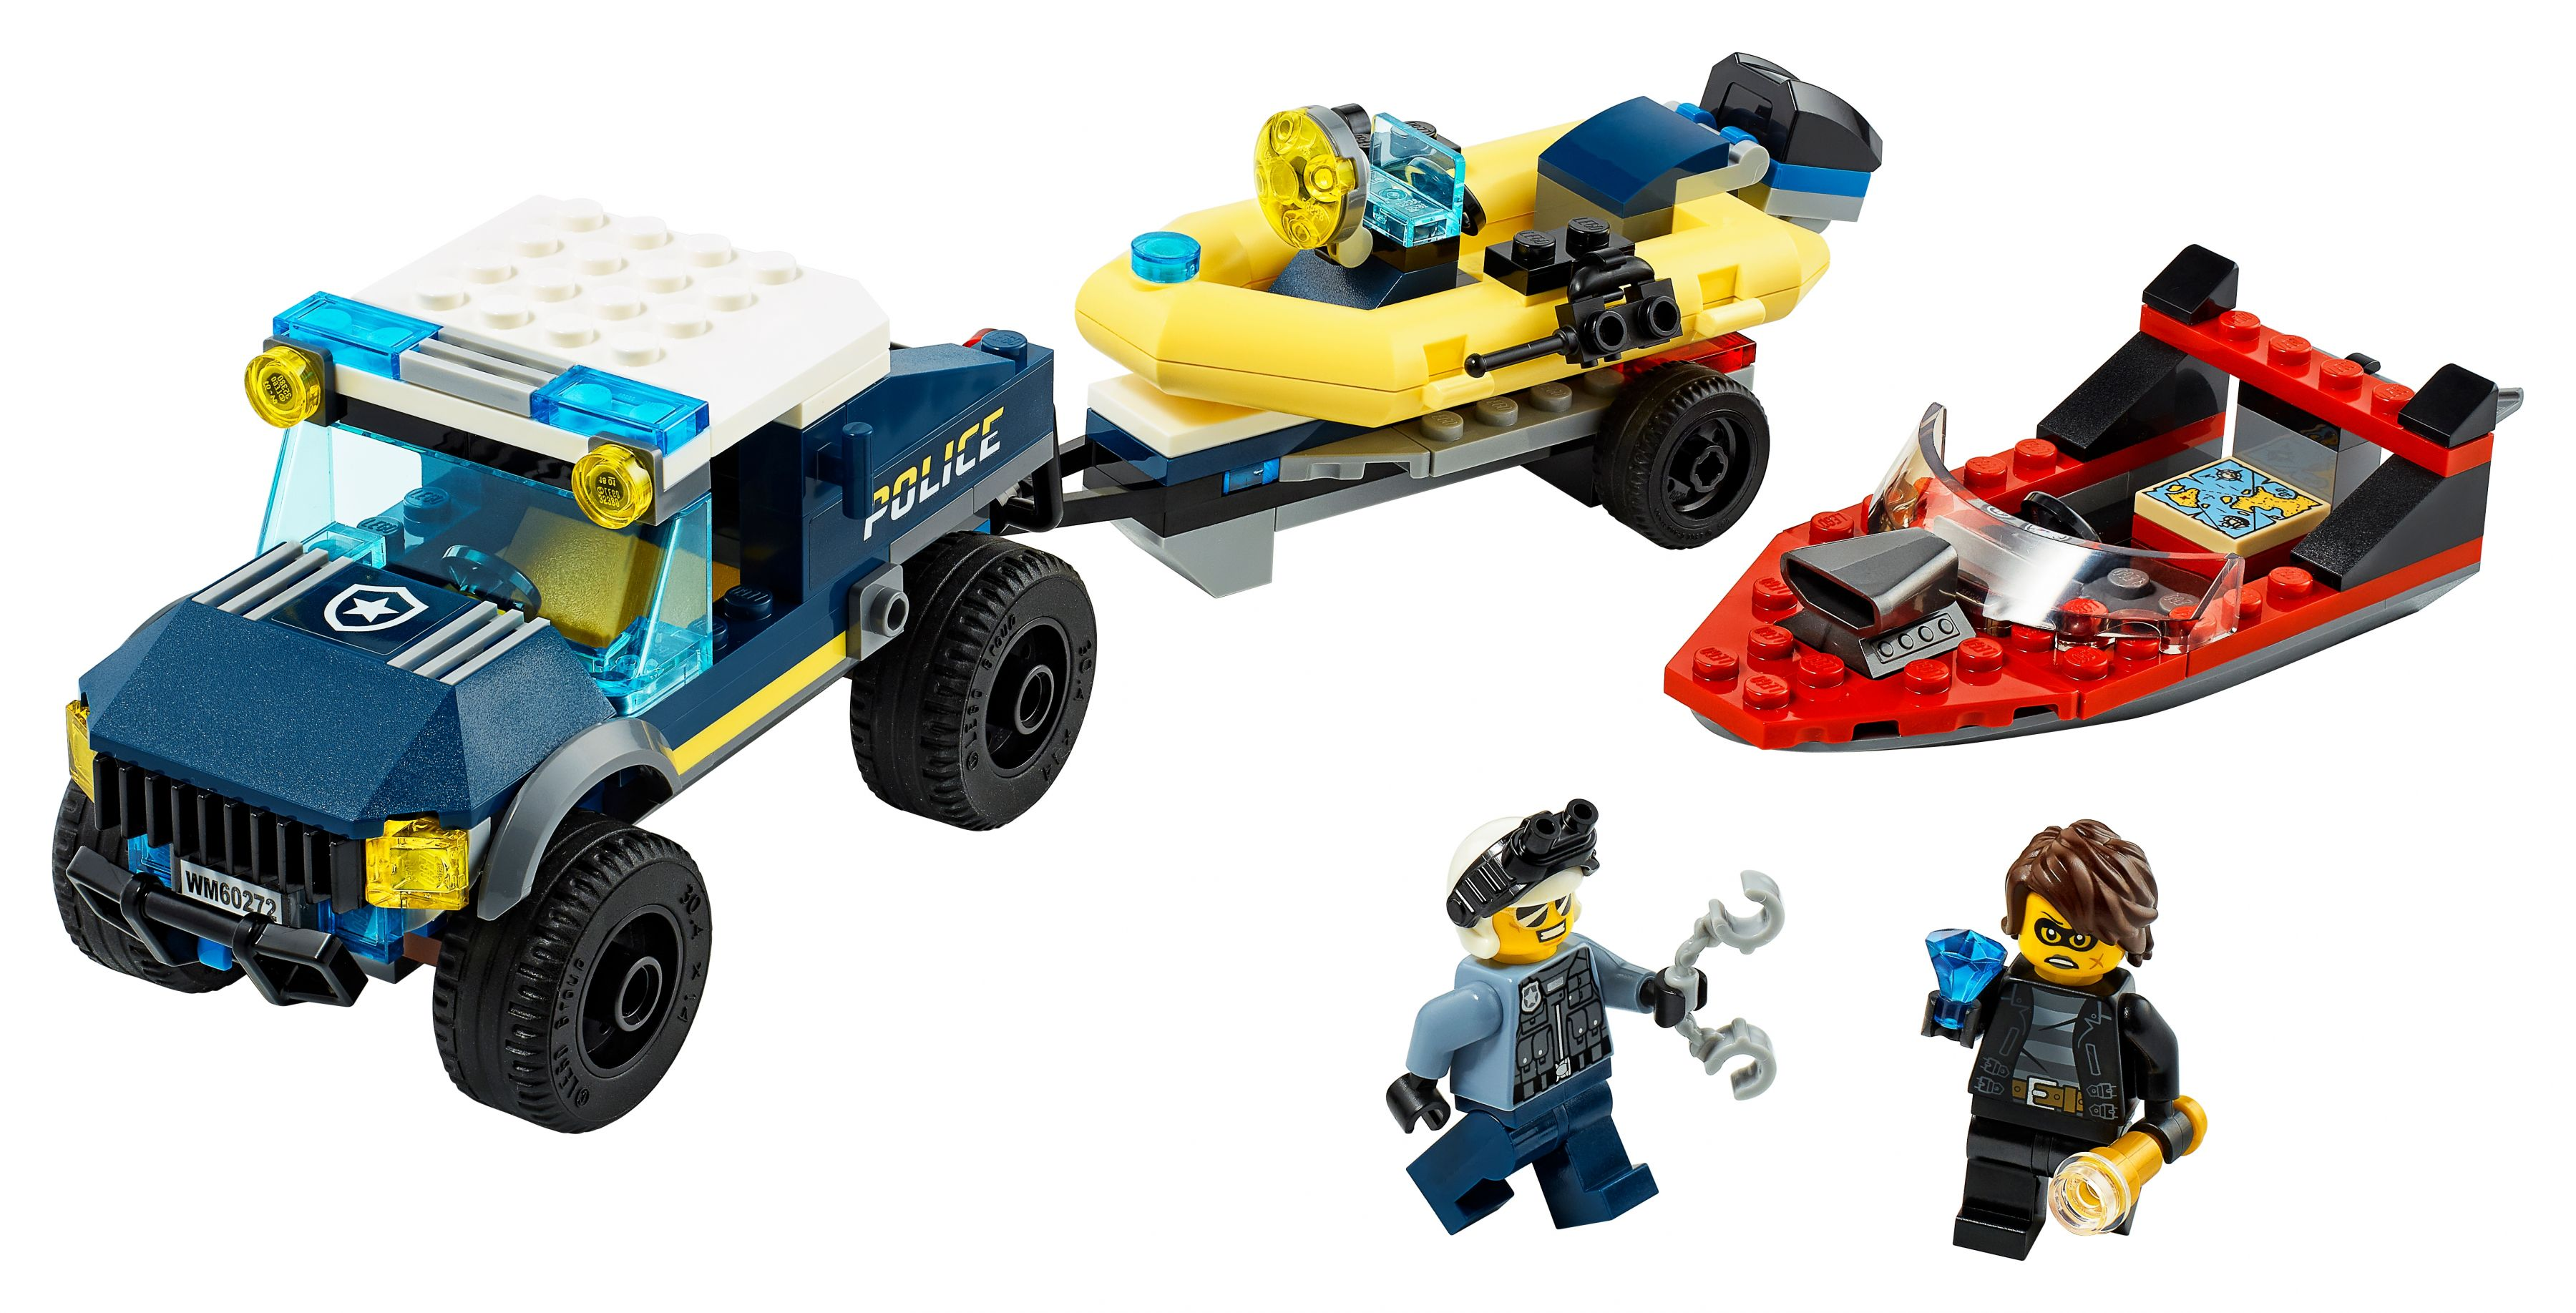 LEGO City 60272 Transport des Polizeiboots